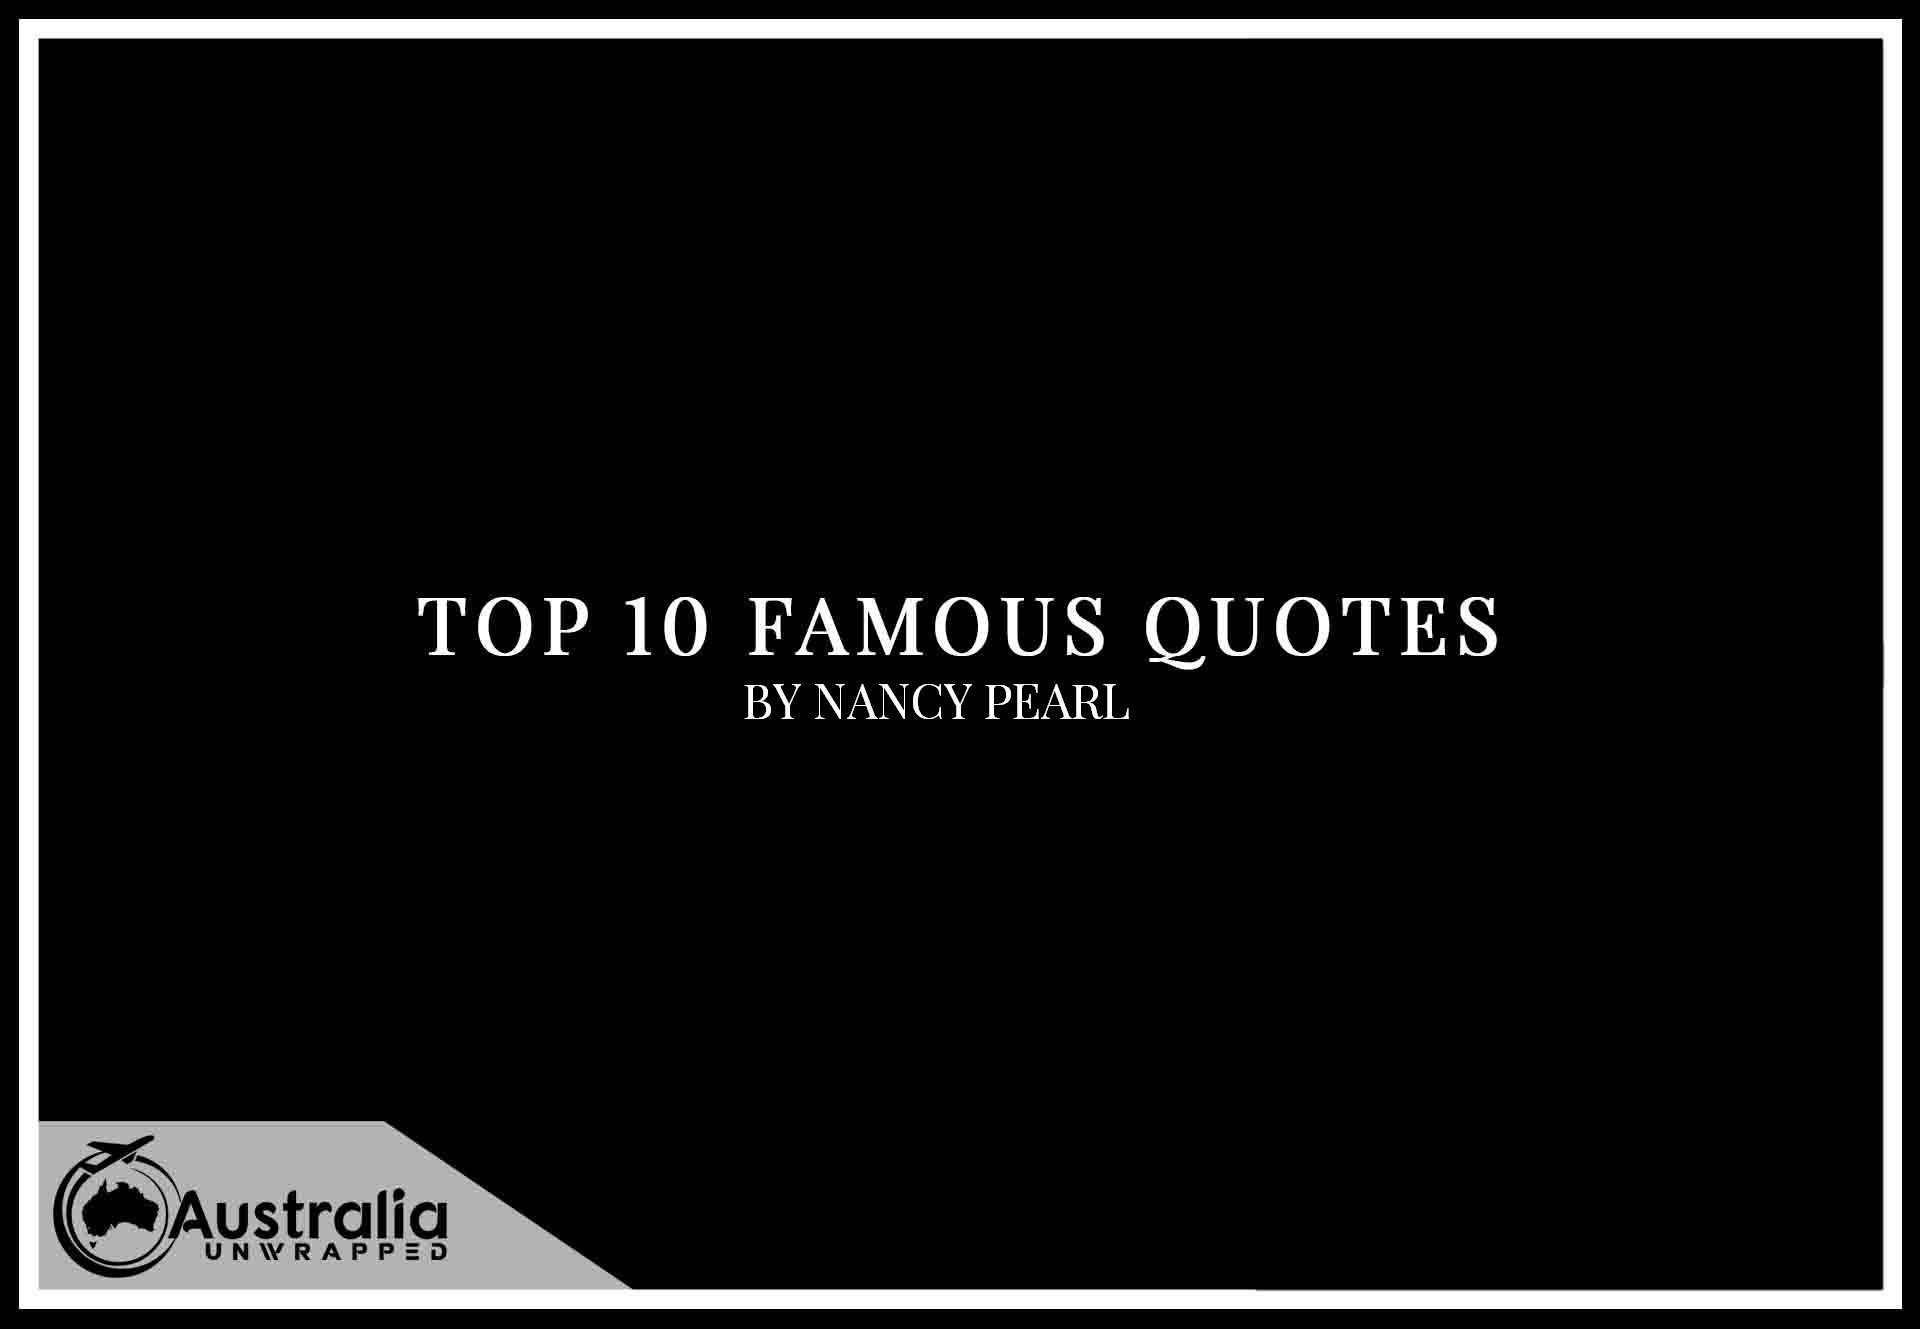 Top 10 Famous Quotes by Author Nancy Pearl